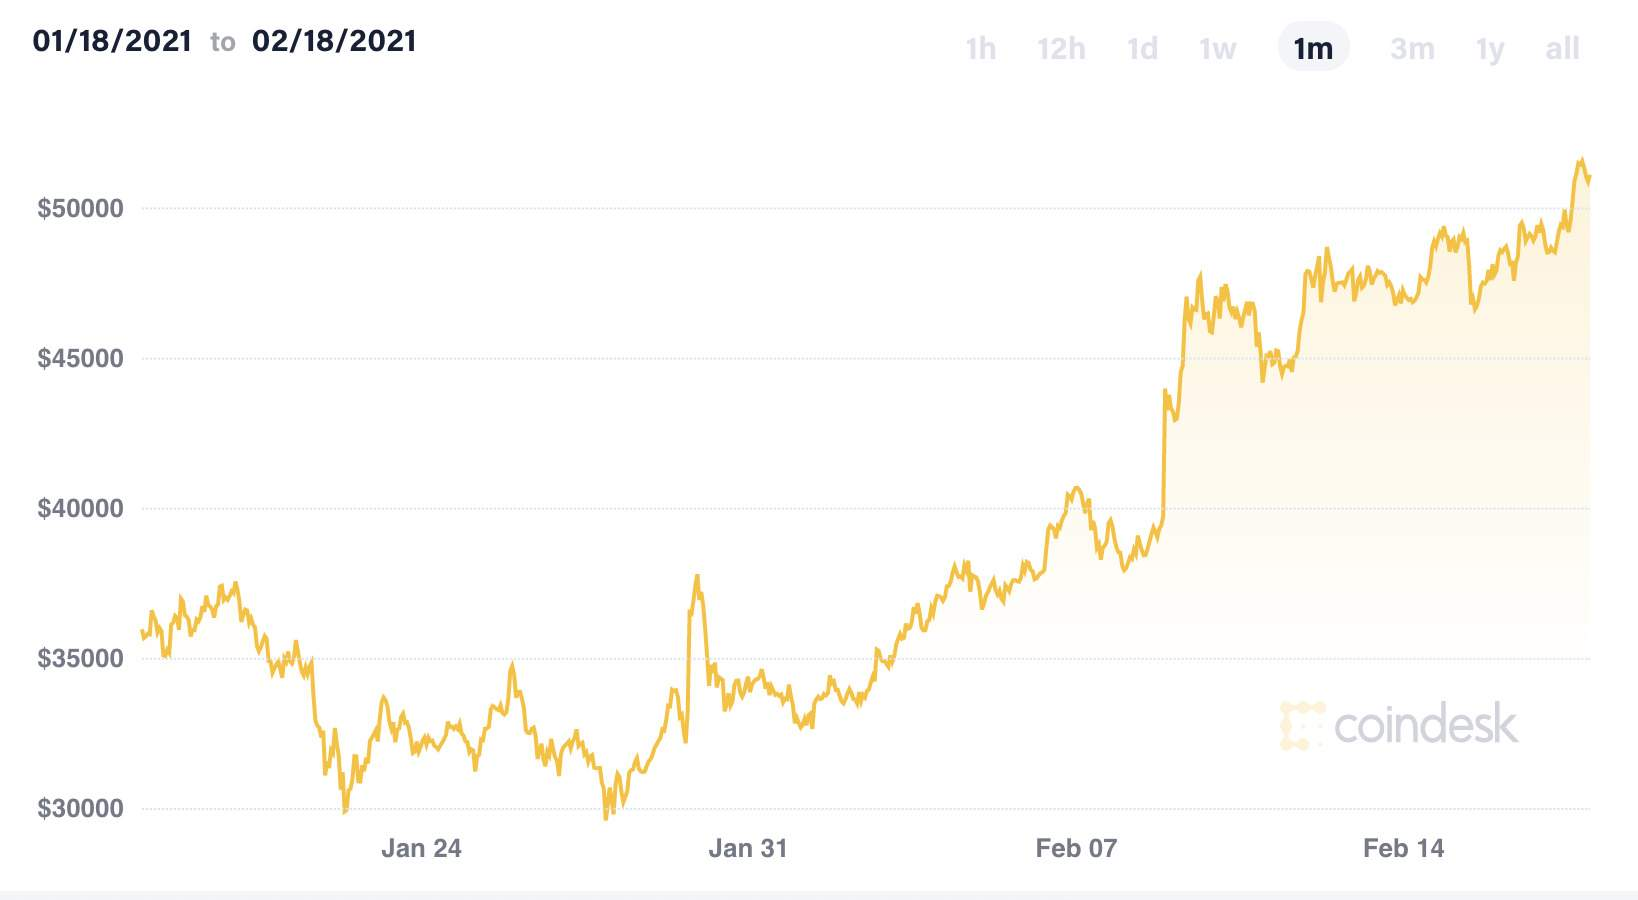 bitcoin-price-jan-to-feb-2021